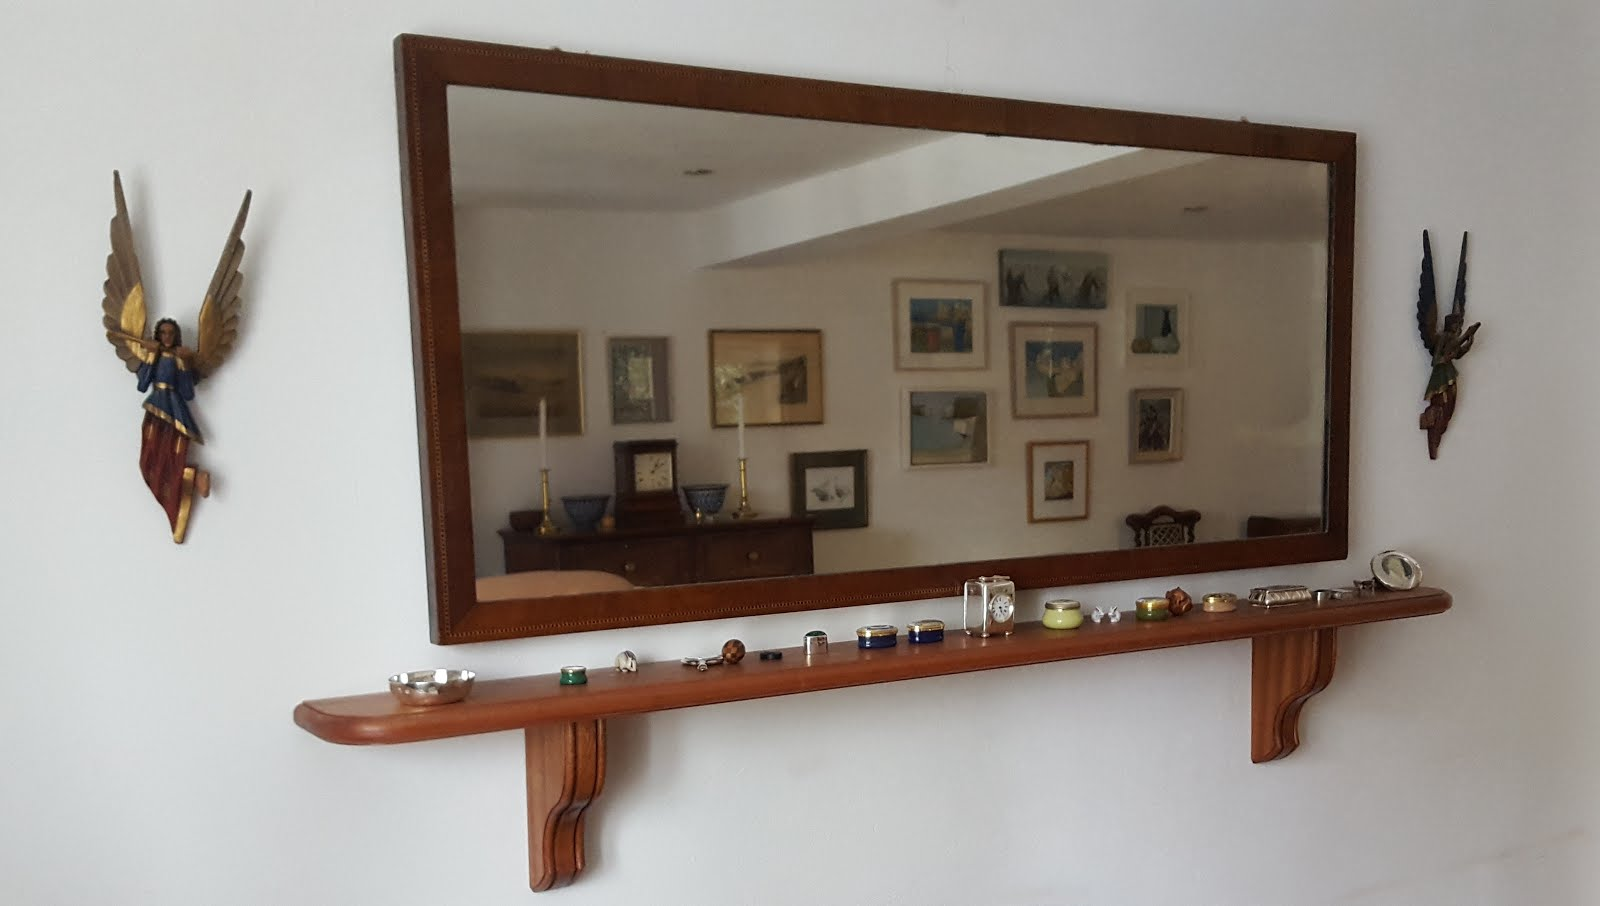 mantel shelf with corbels in sapele